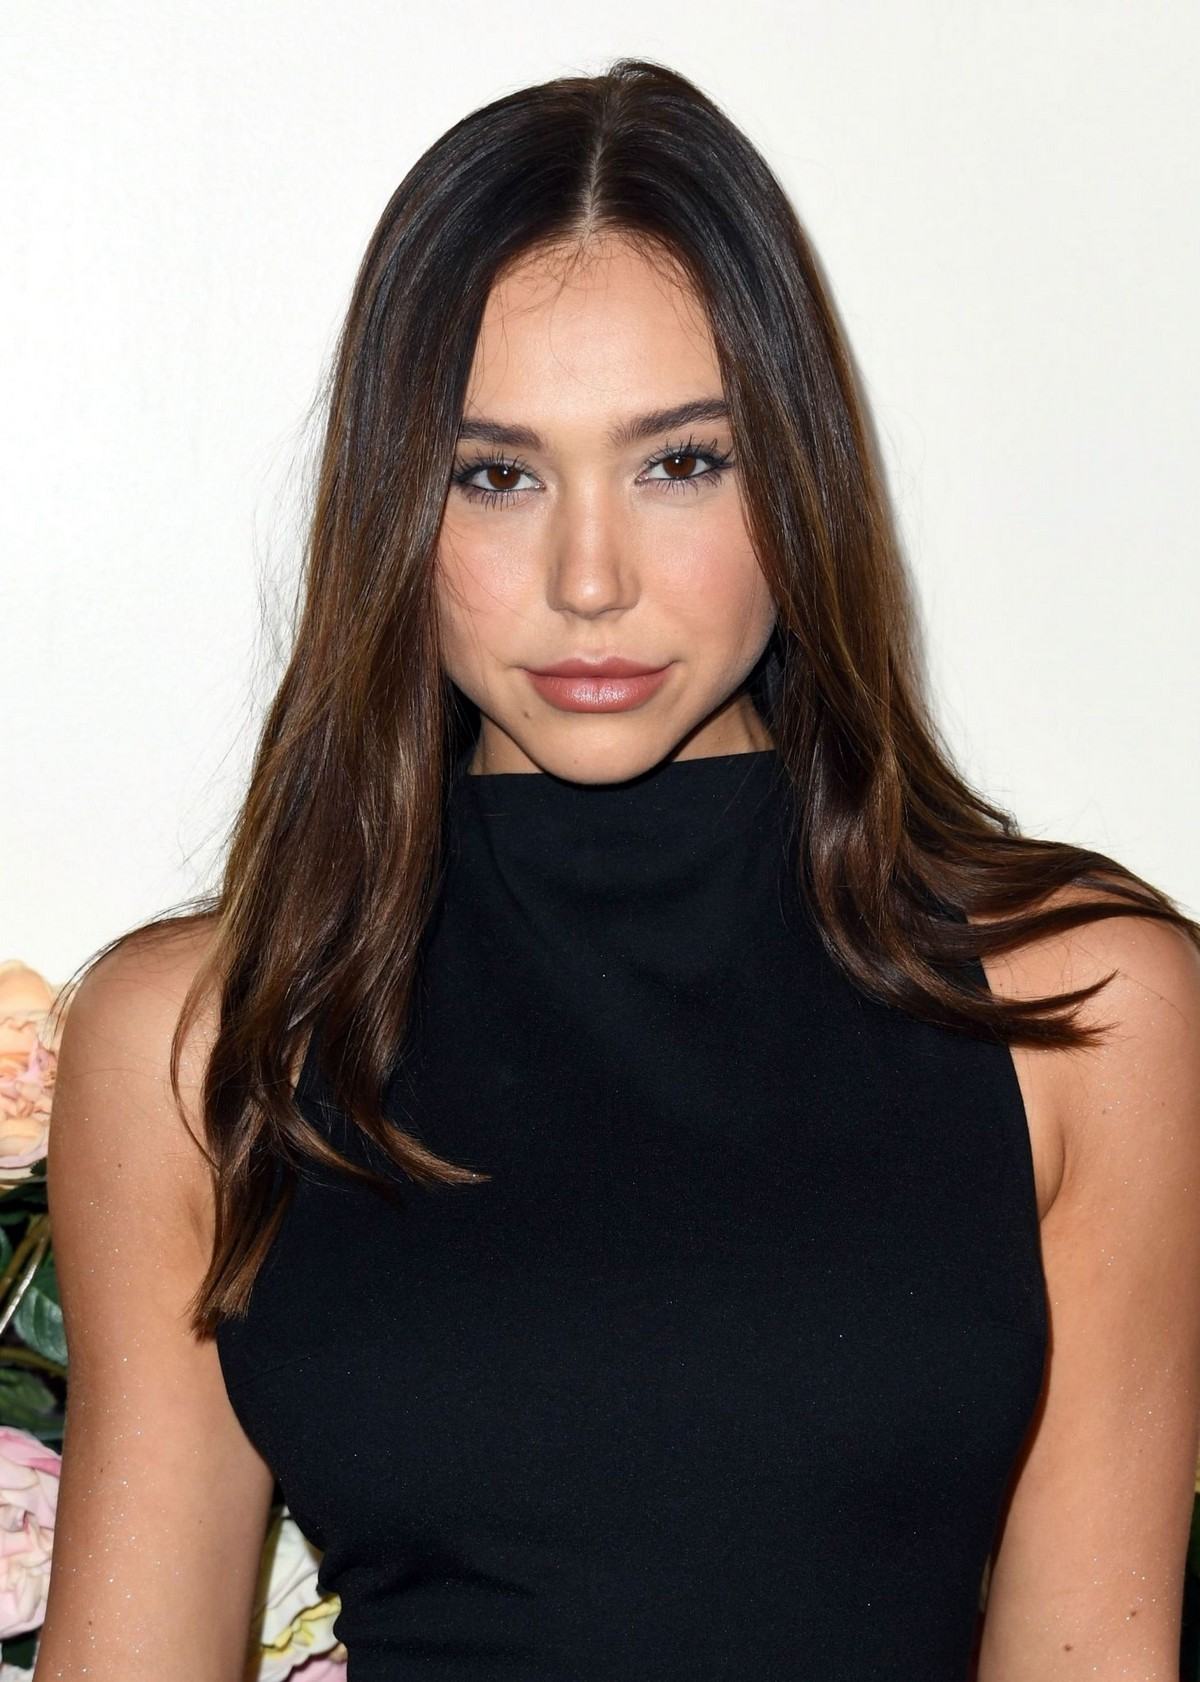 Alexis Ren in Black Dress at 3rd Annual #Revolve Awards in Hollywood 2019/11/15 4